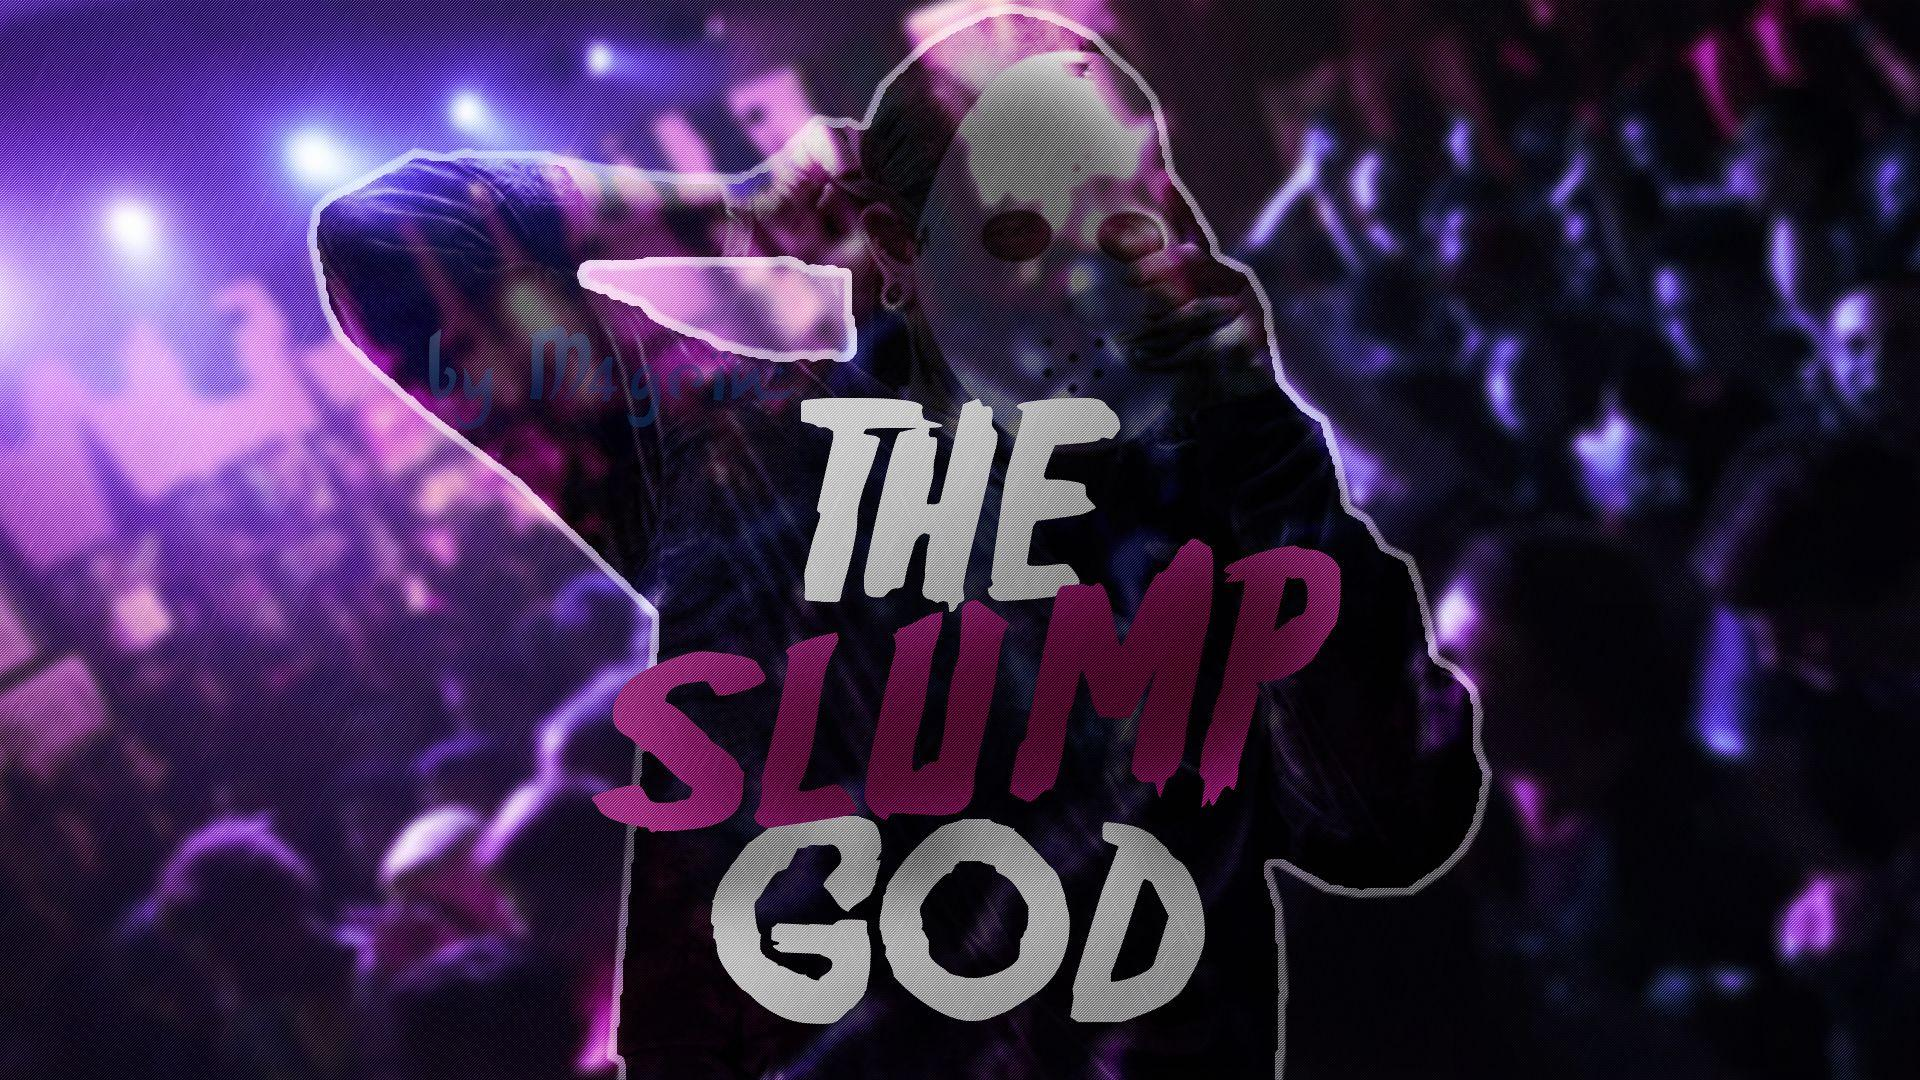 Famous Ski Mask The Slump God Wallpapers